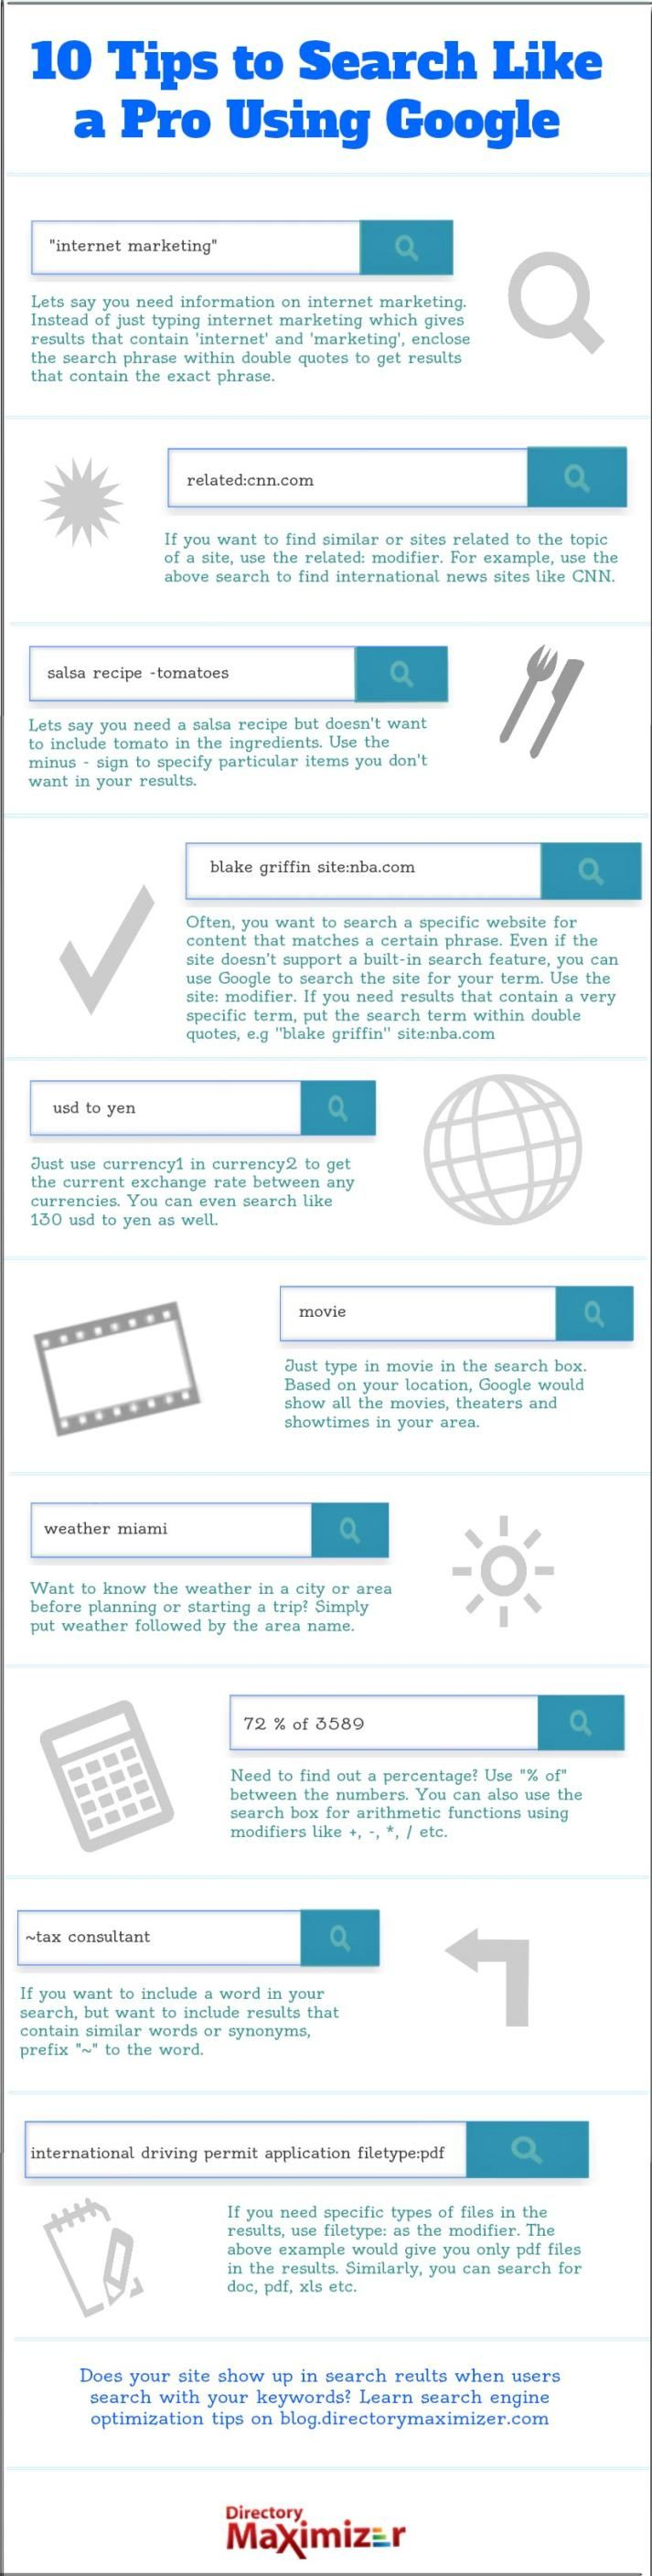 10 tips to search like a pro using Google #infografia #infographic #internet